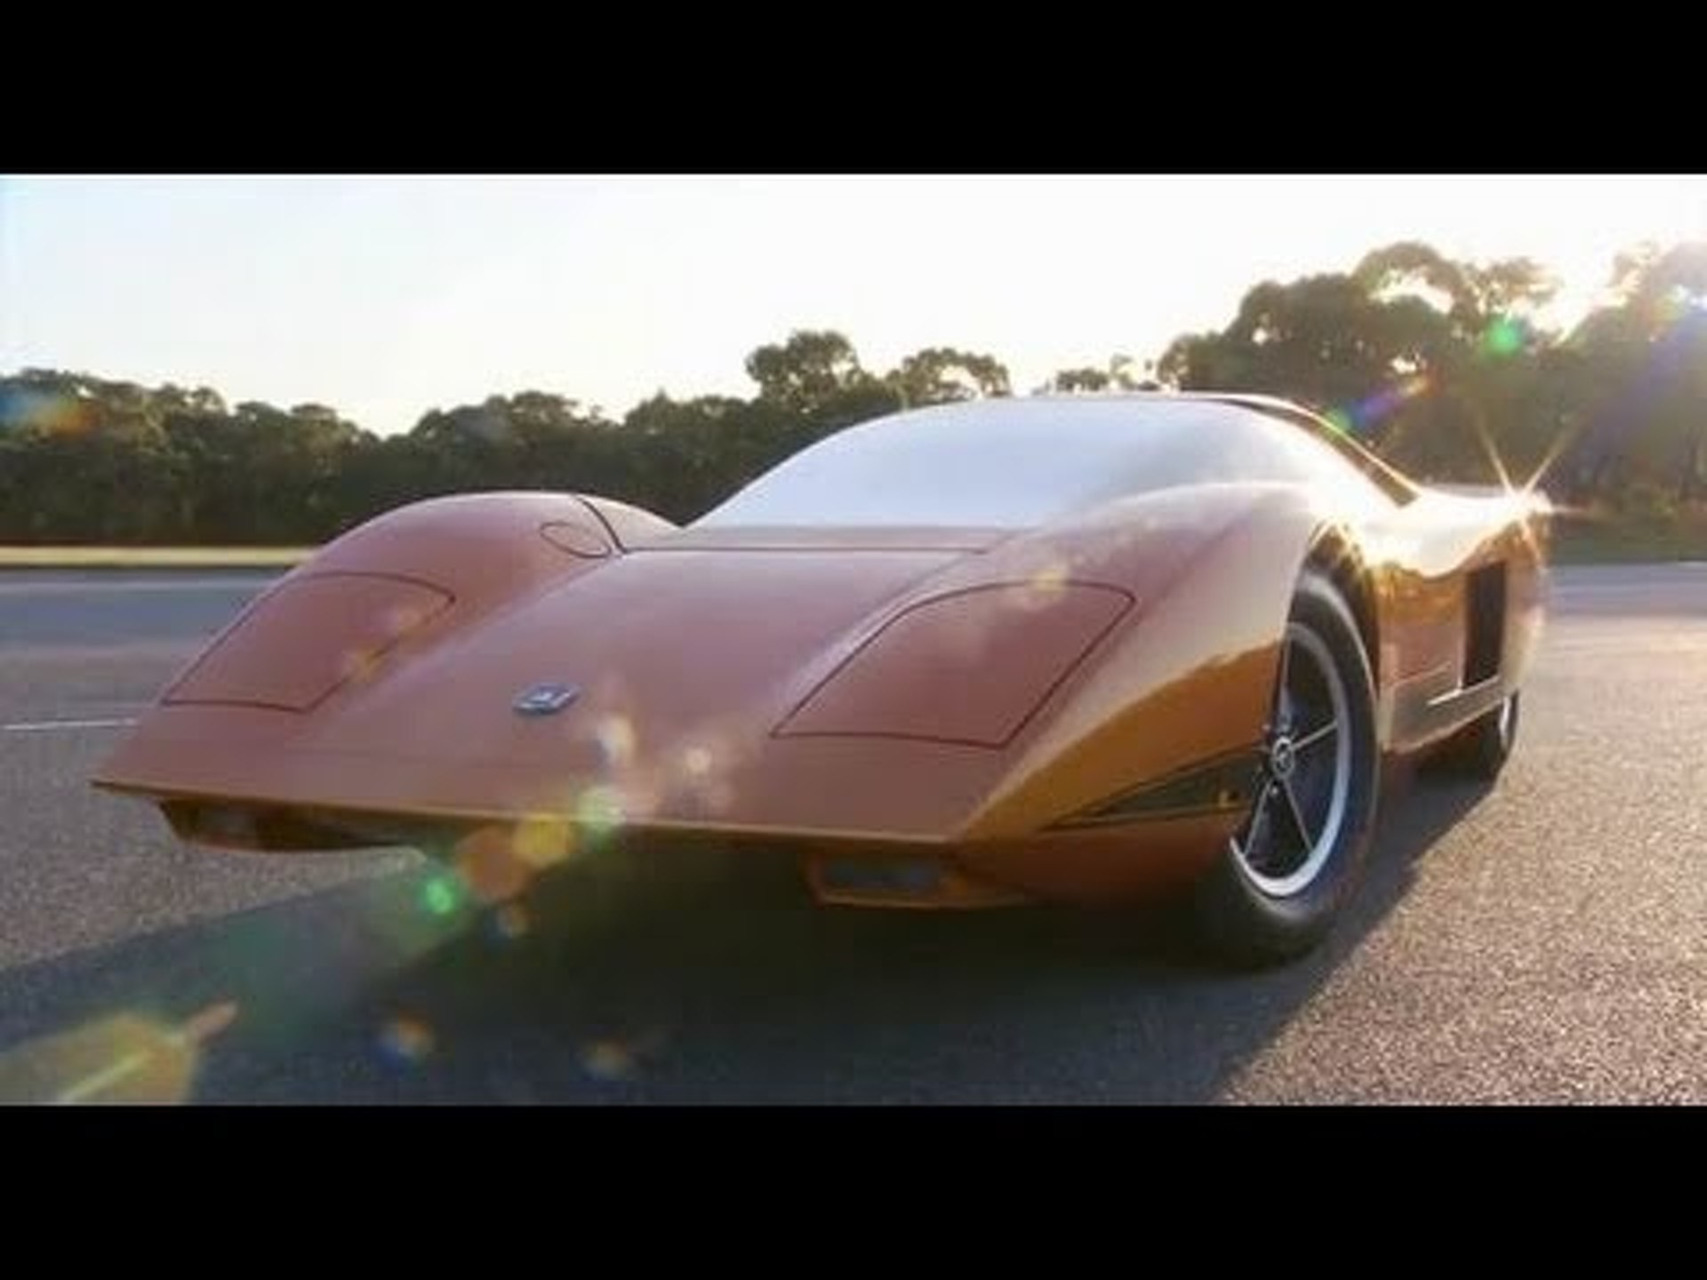 1969 Holden Hurricane concept car - restored 2011